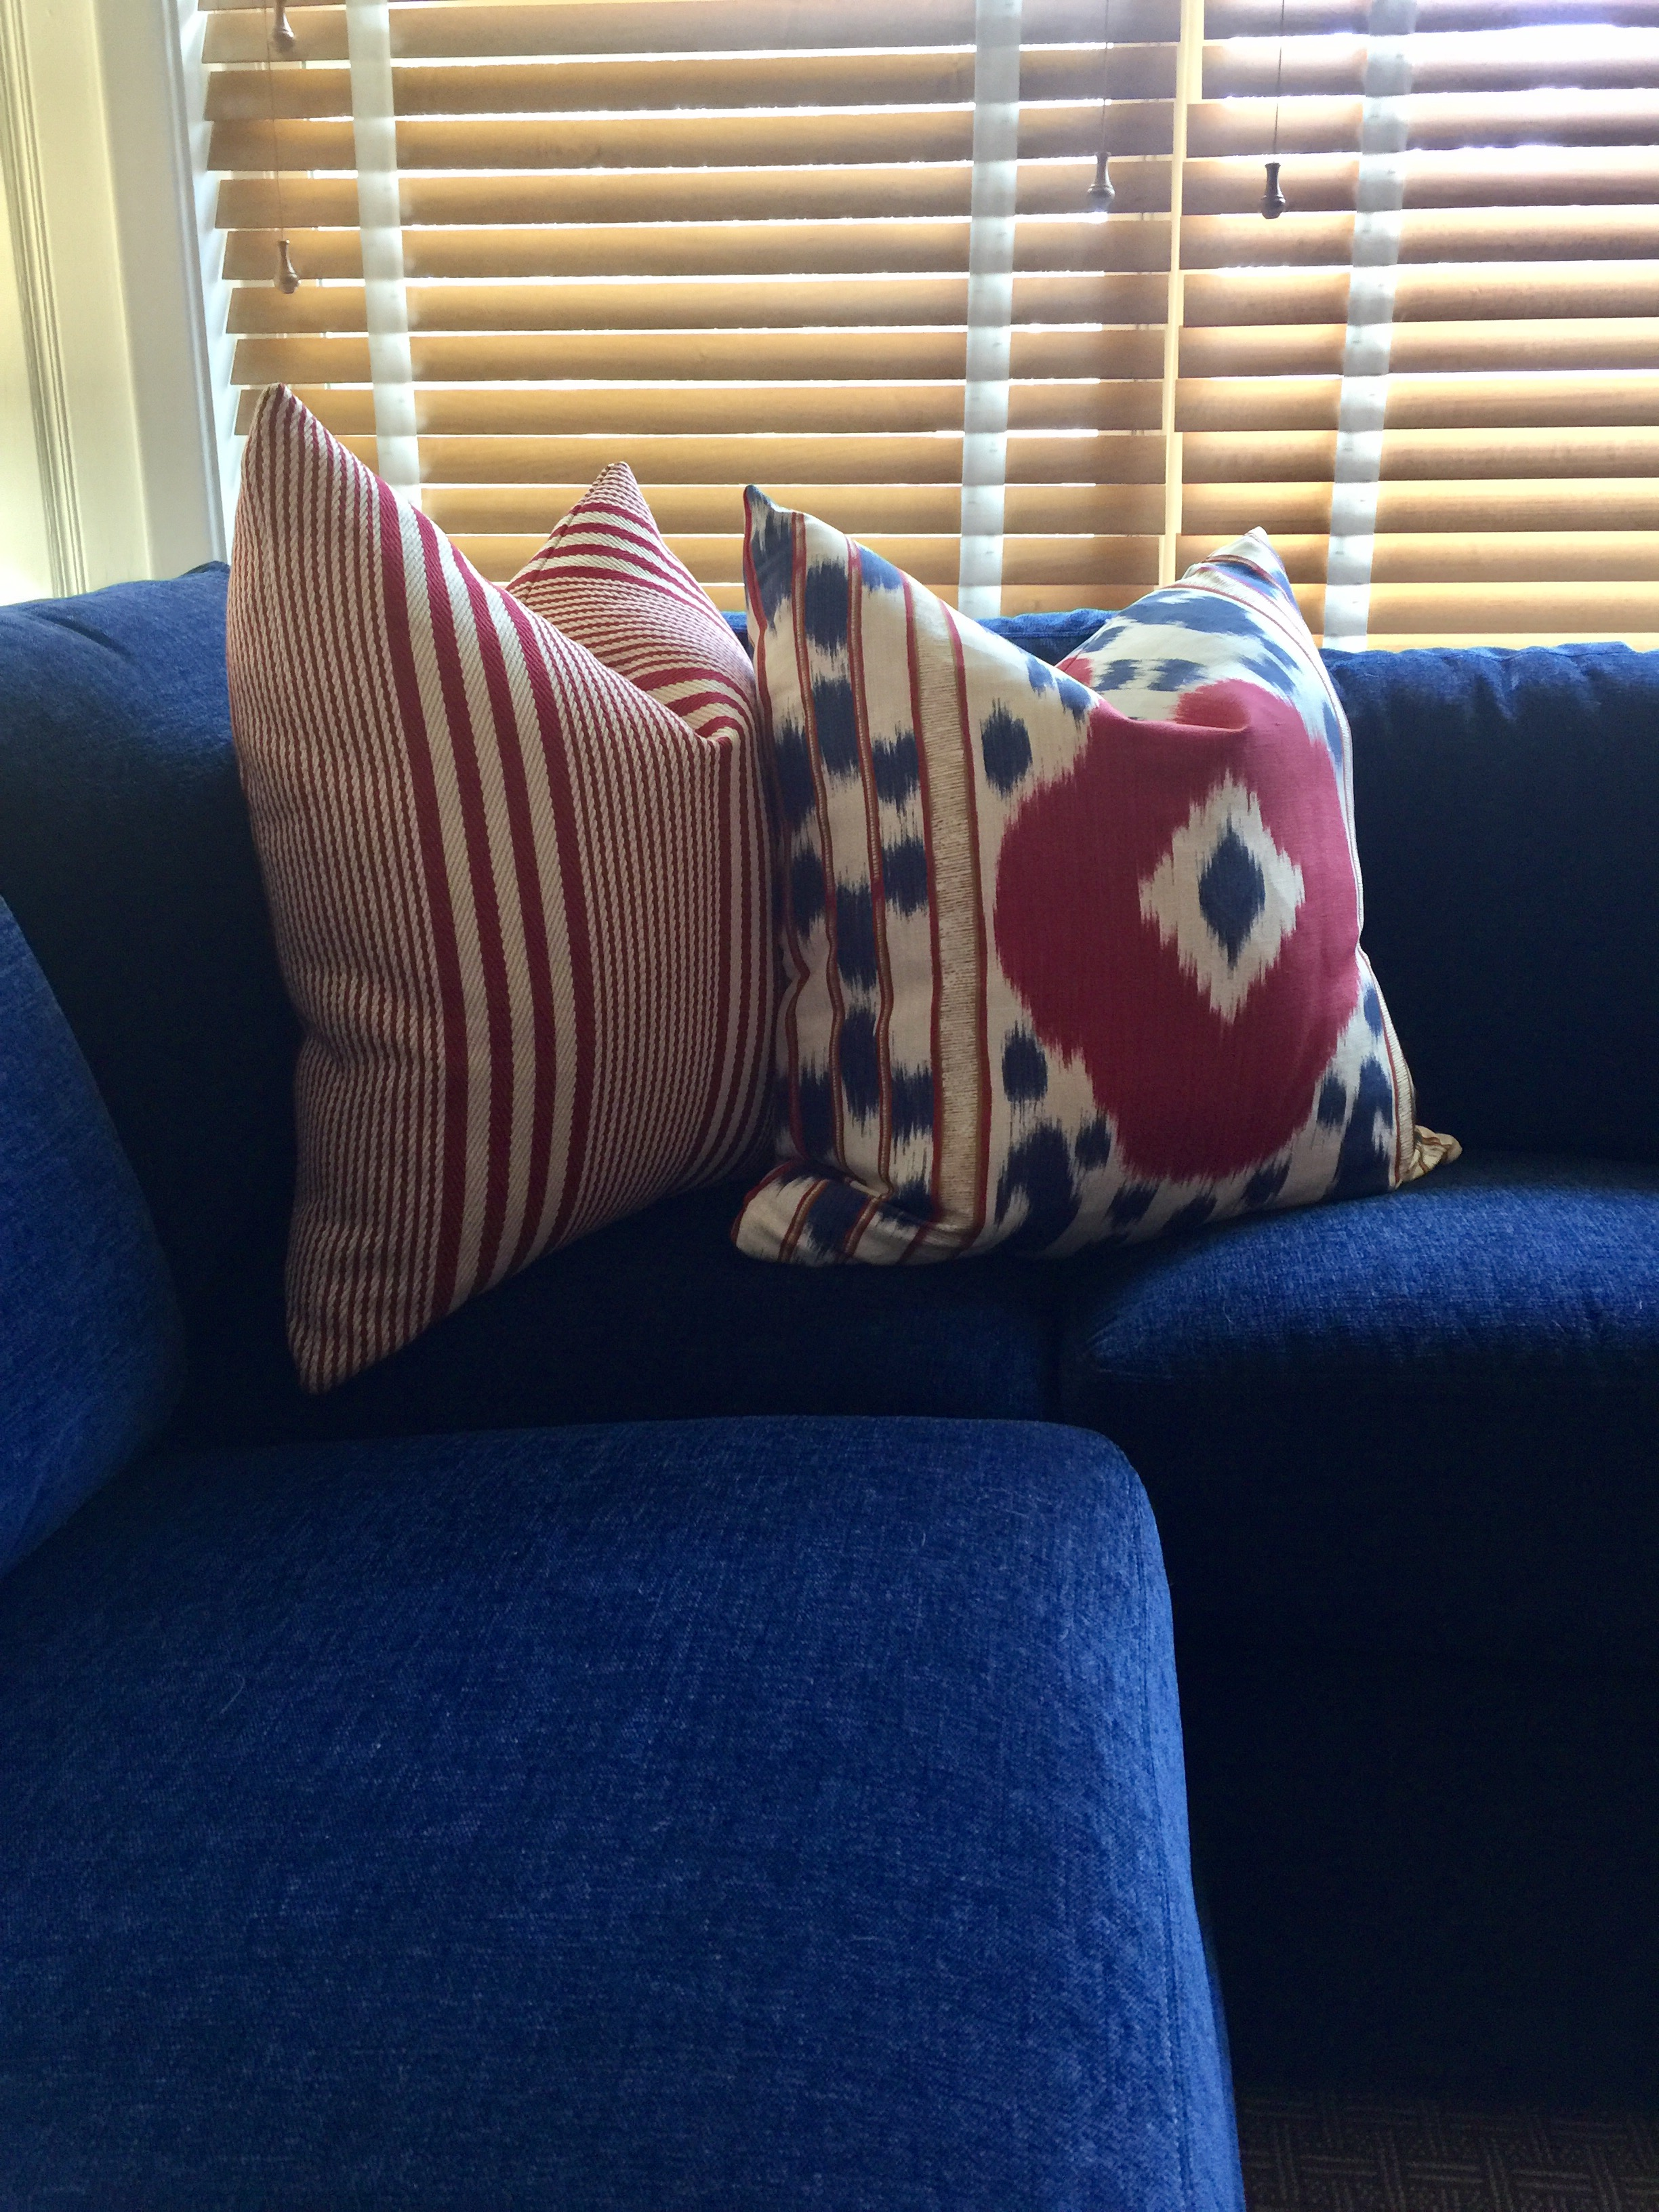 Blue sofa with red white and blue pillows and wood blinds - Designer: Carla Aston